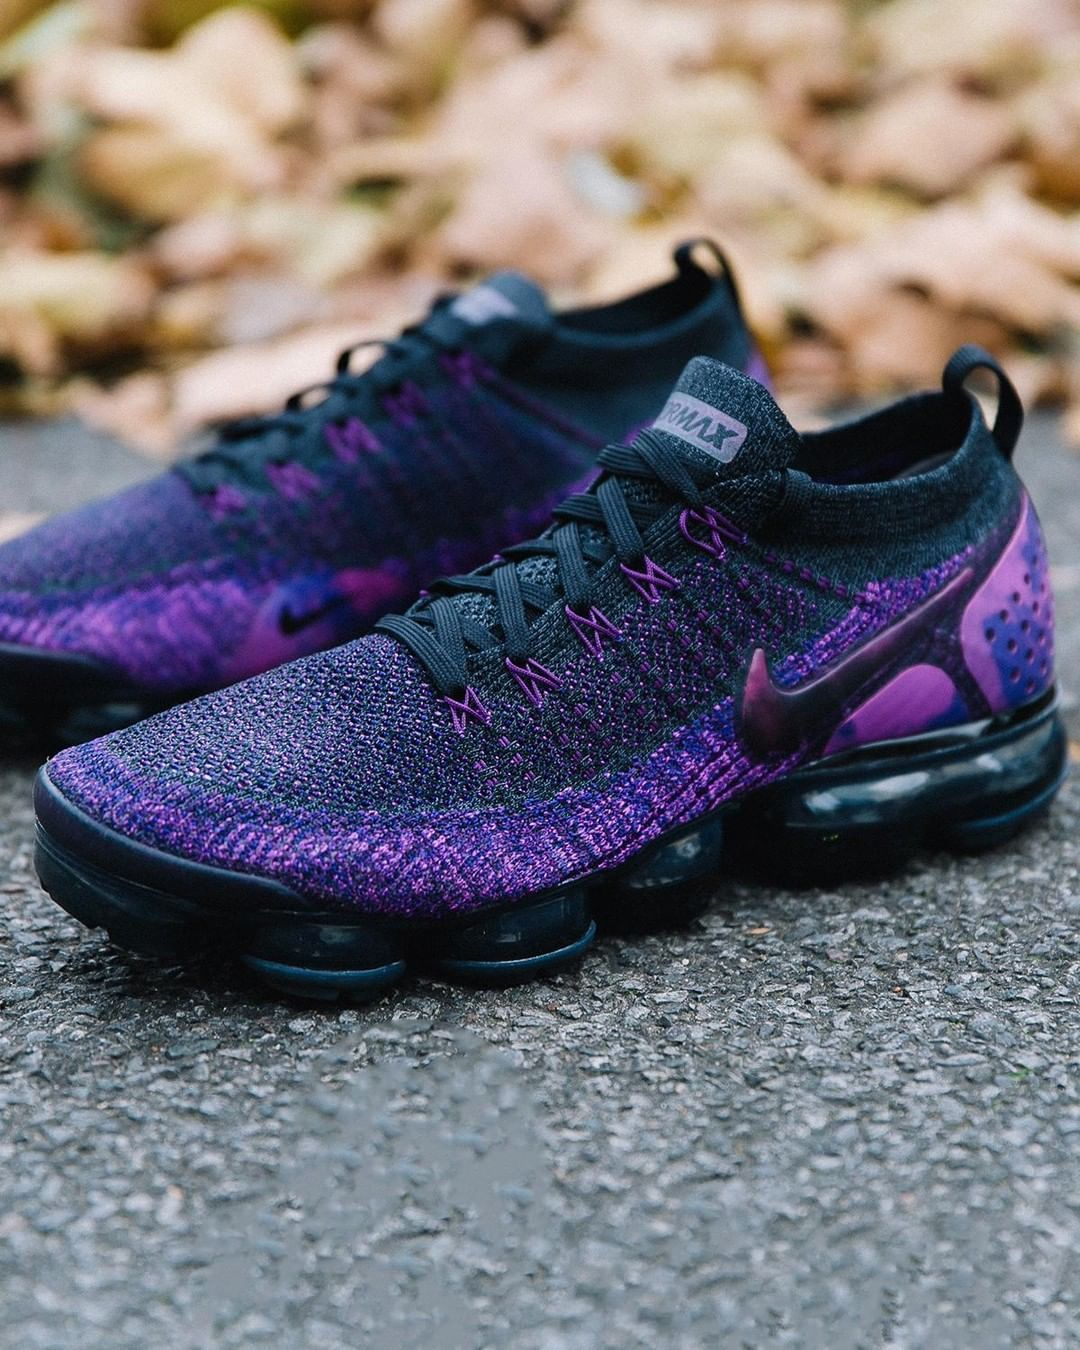 6f7722038d Nike Air Vapormax Flyknit 2 'Night Purple' | Sneakers in 2019 | Nike ...